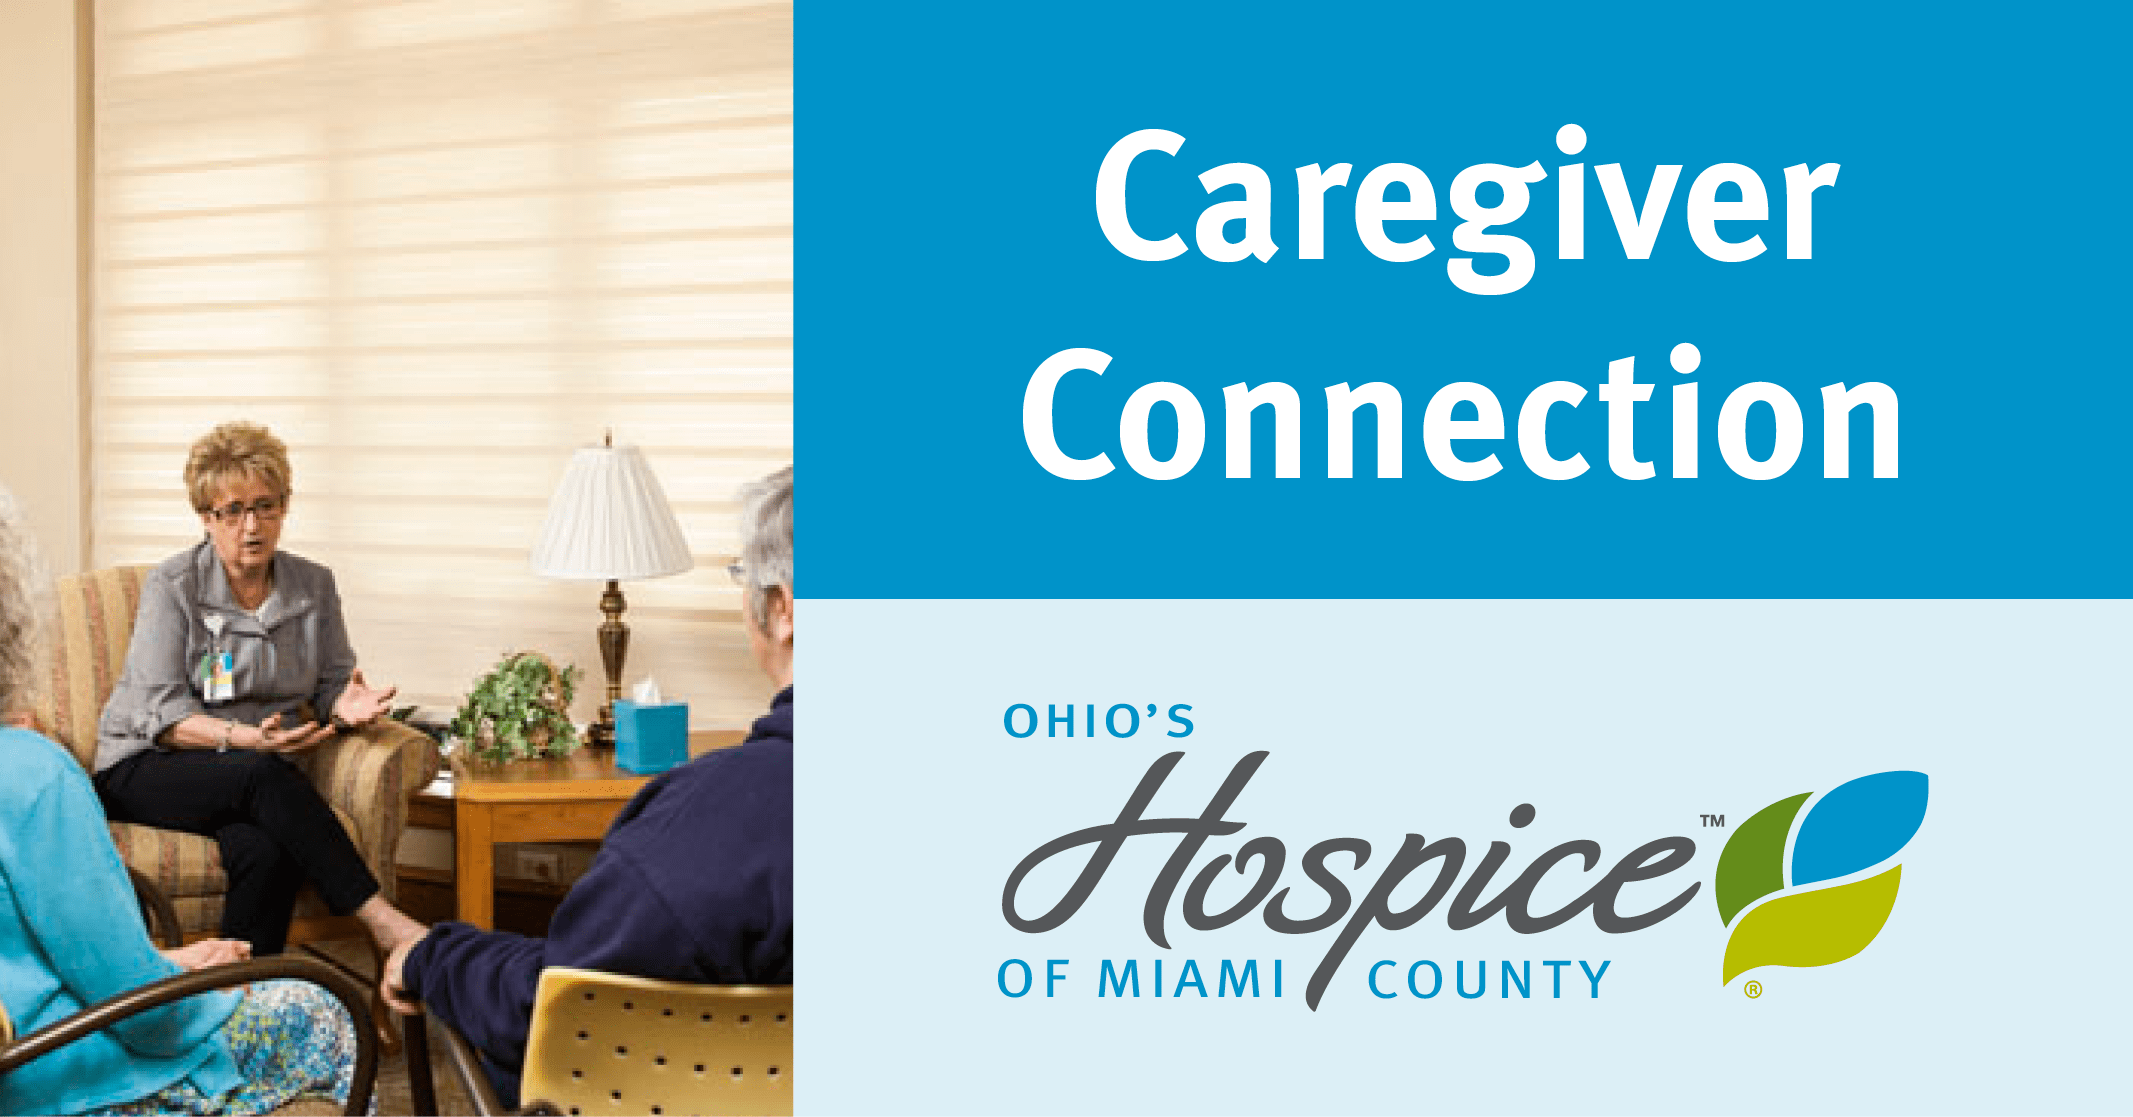 Caregiver Connection Supports Home Caregivers